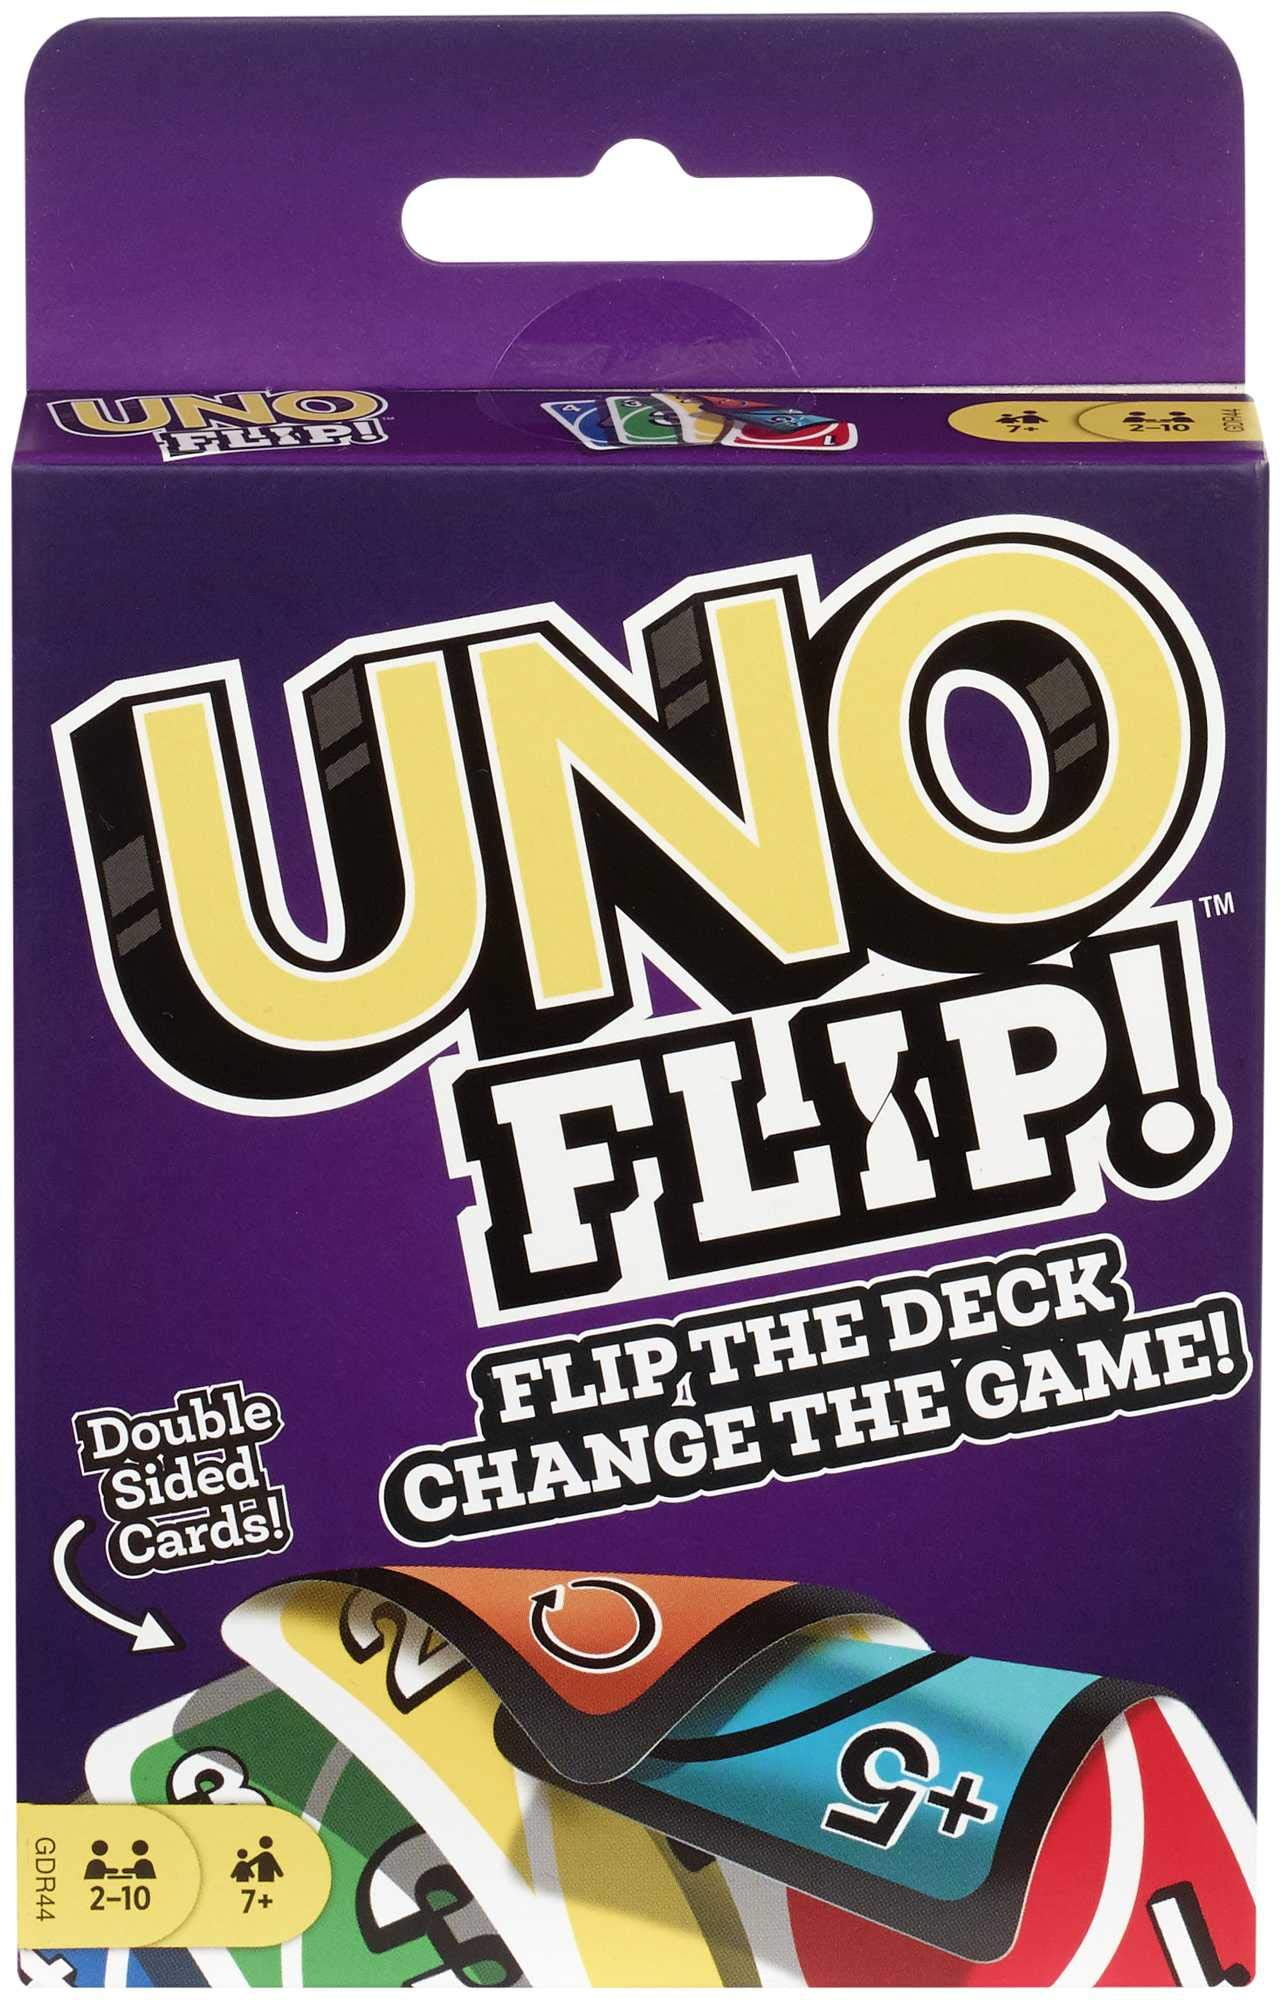 UNO FLIP! Family Card Game, with 112 Cards, Makes a Great Gift for 7 Year Olds and Up